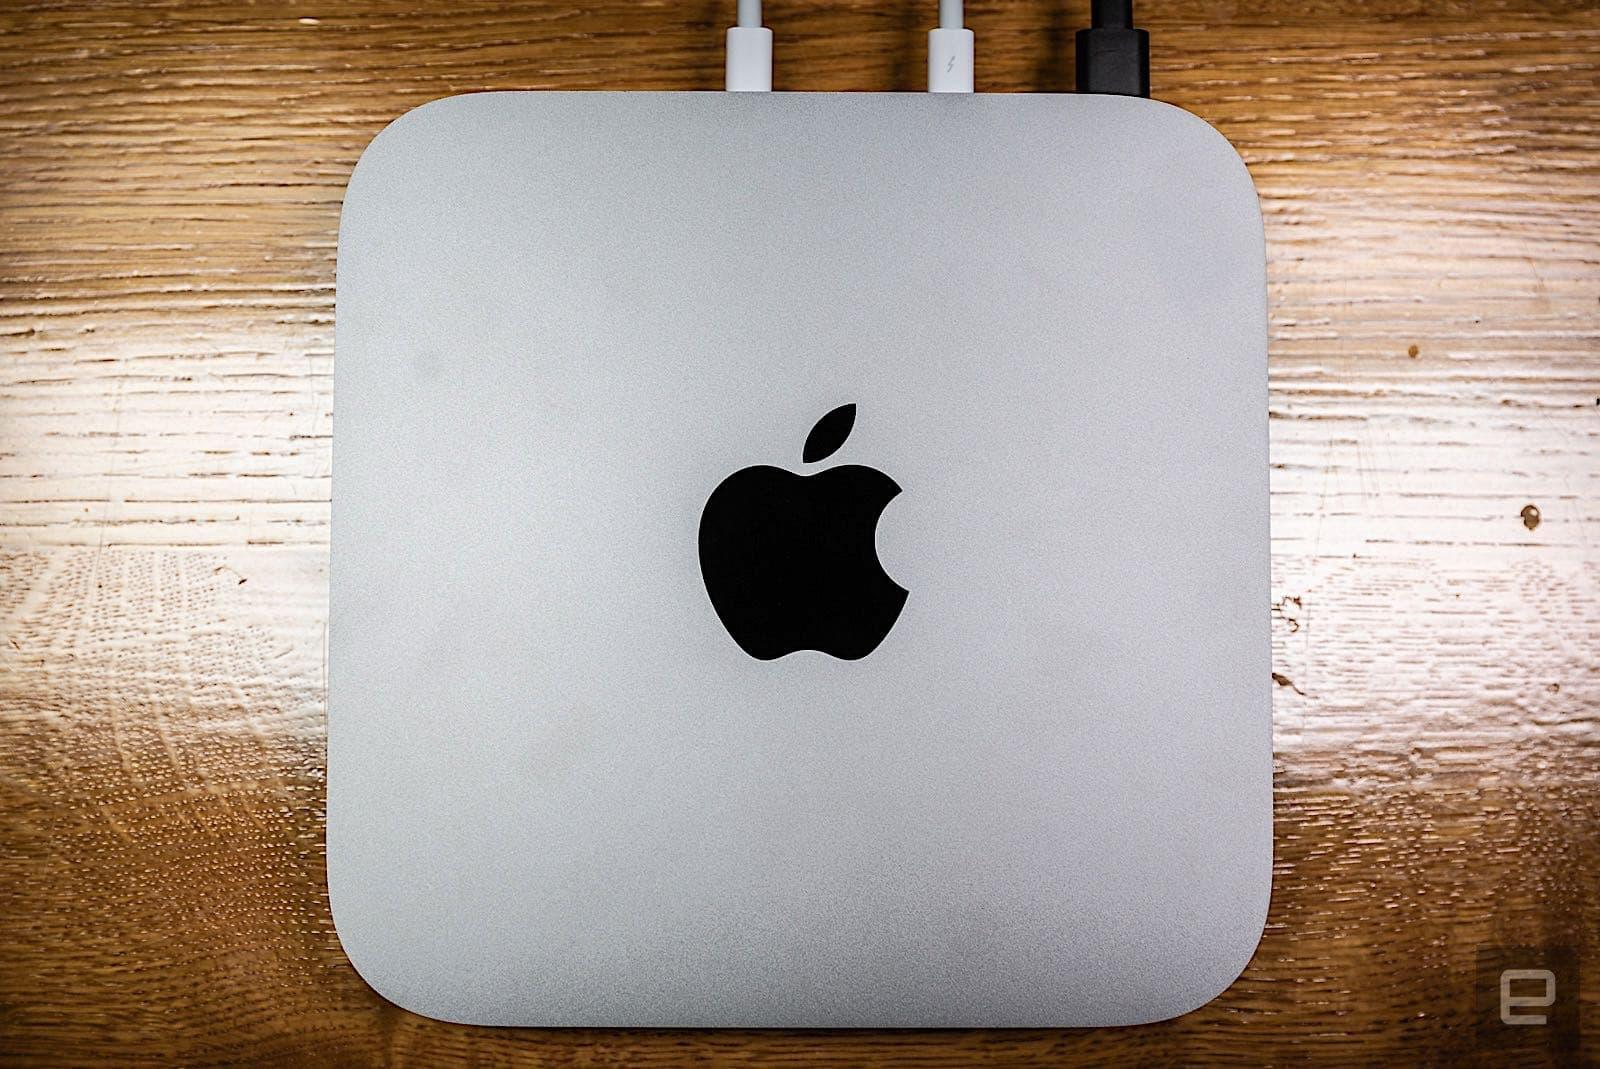 Apple Mac Mini review (2018): A video editor's perspective